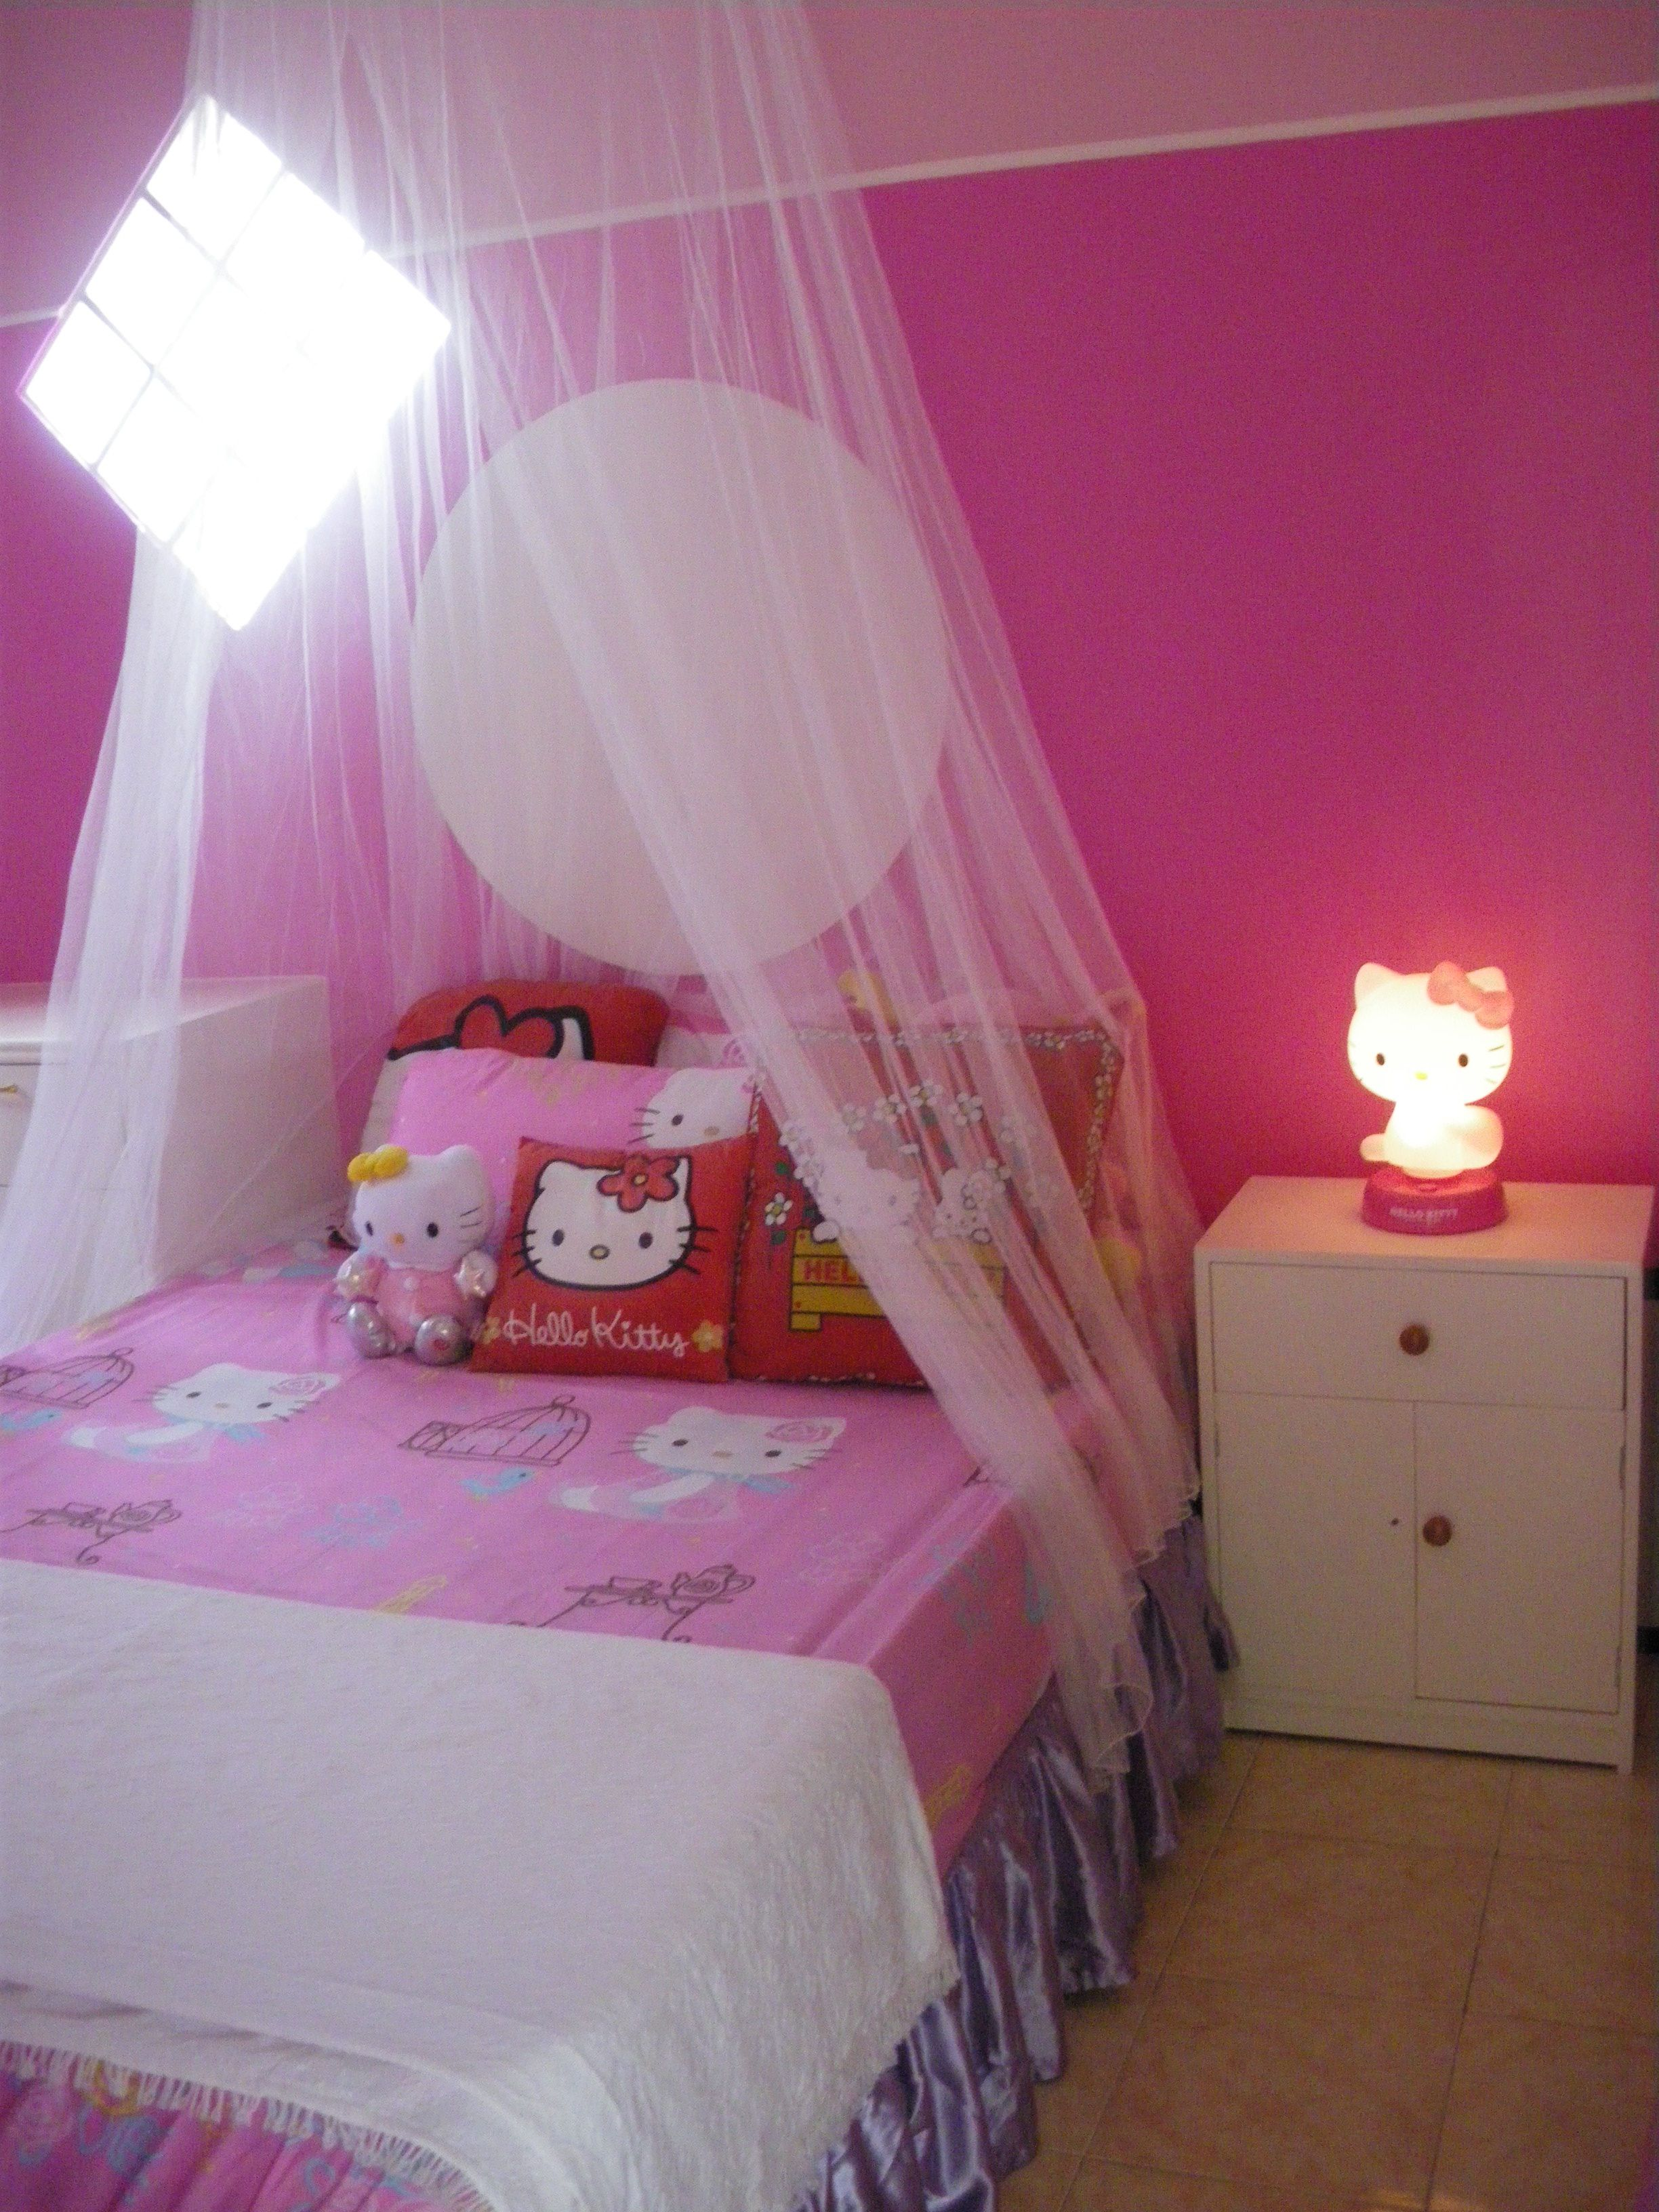 If This Were My Room, I'd Decorate The Walls With More Hk